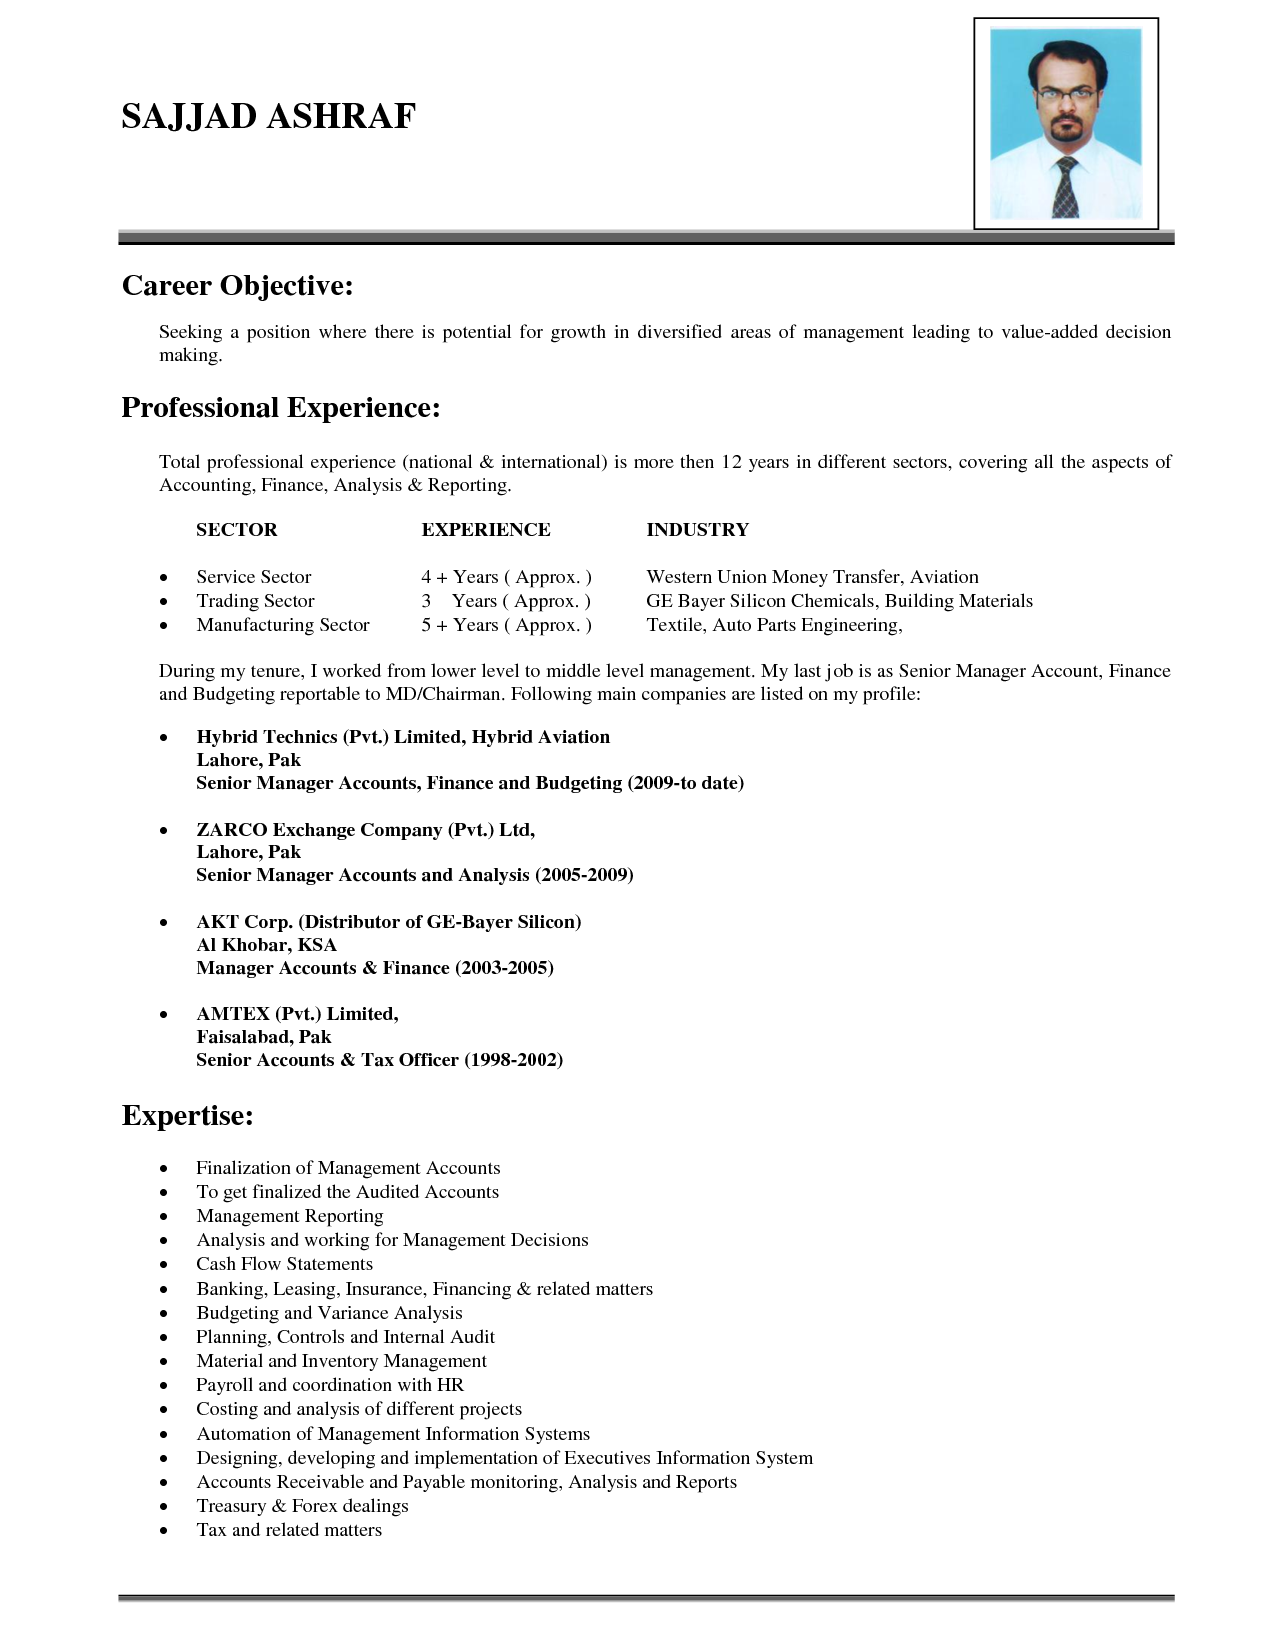 Job resume objective statement examples